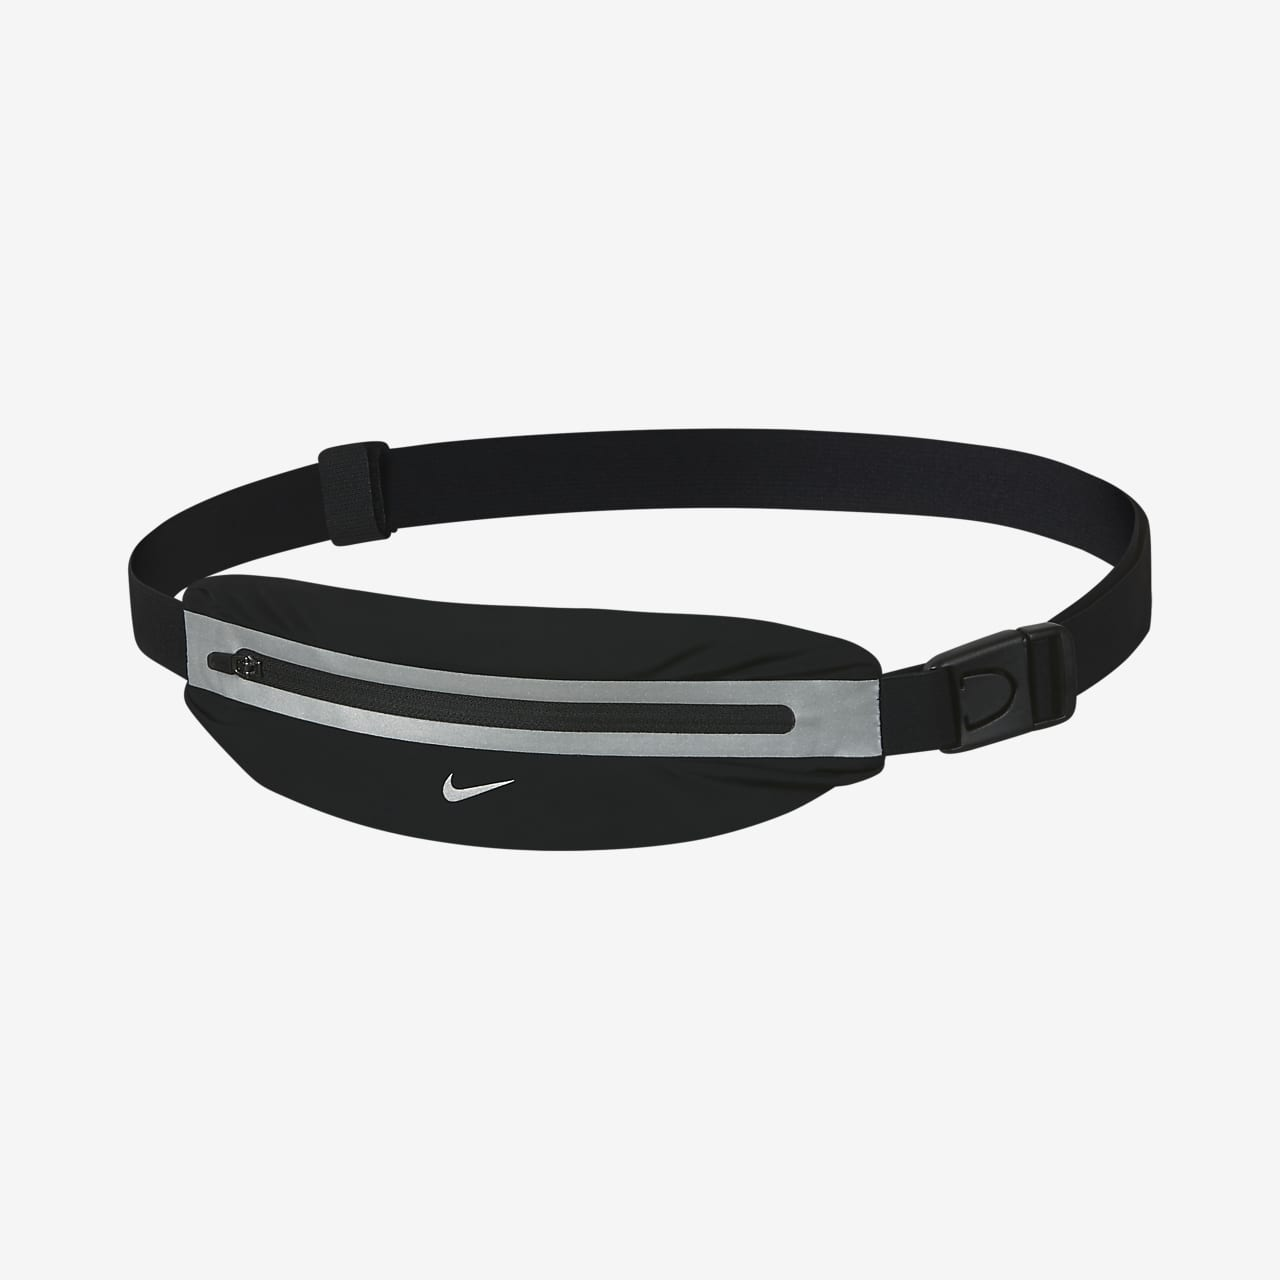 Nike Slim Hip Pack